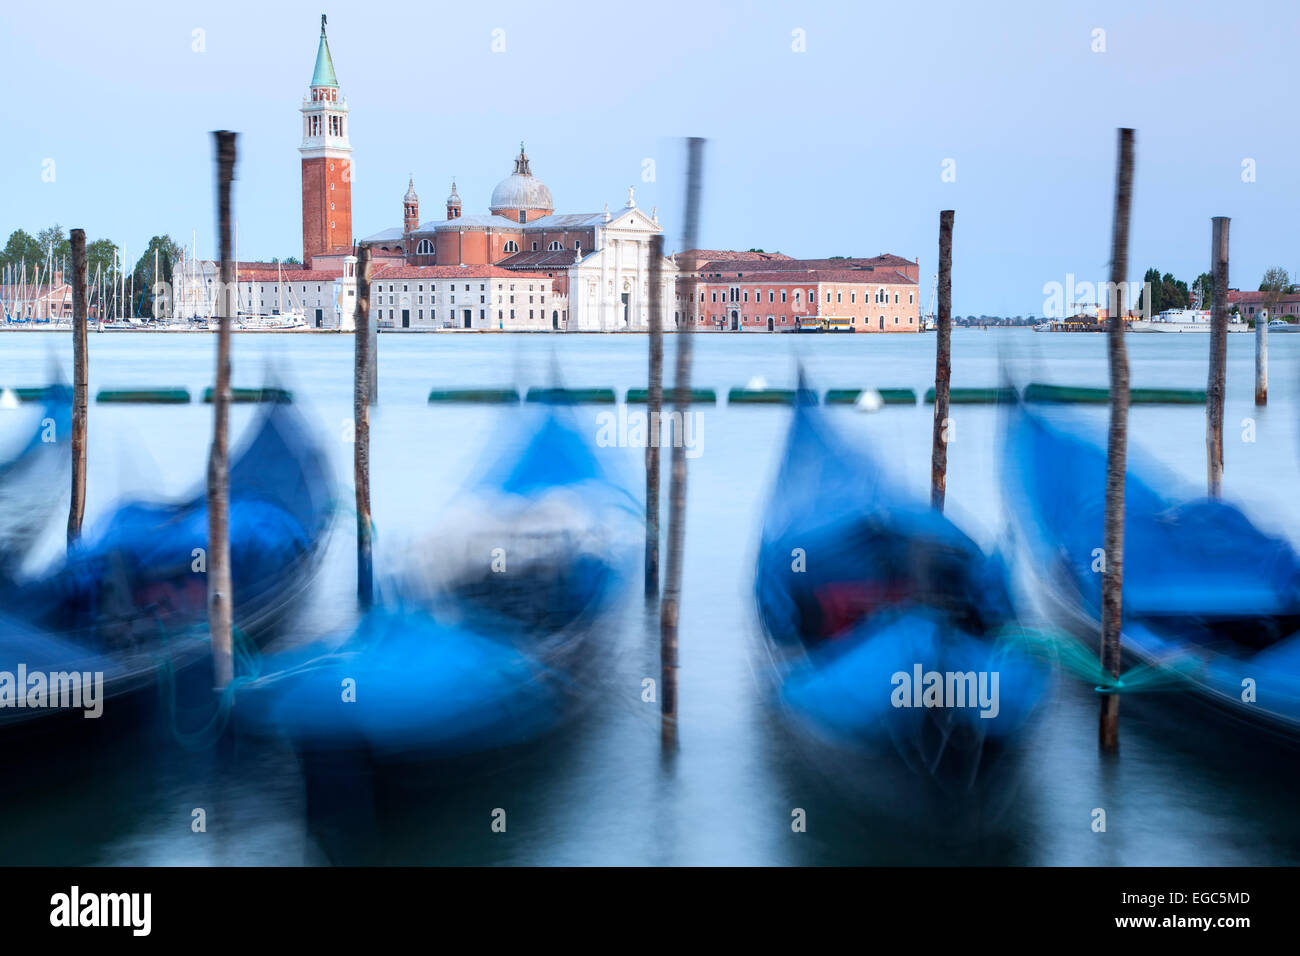 Gondolas and San Giorgio Maggiore Church, Venice, Italy Stock Photo